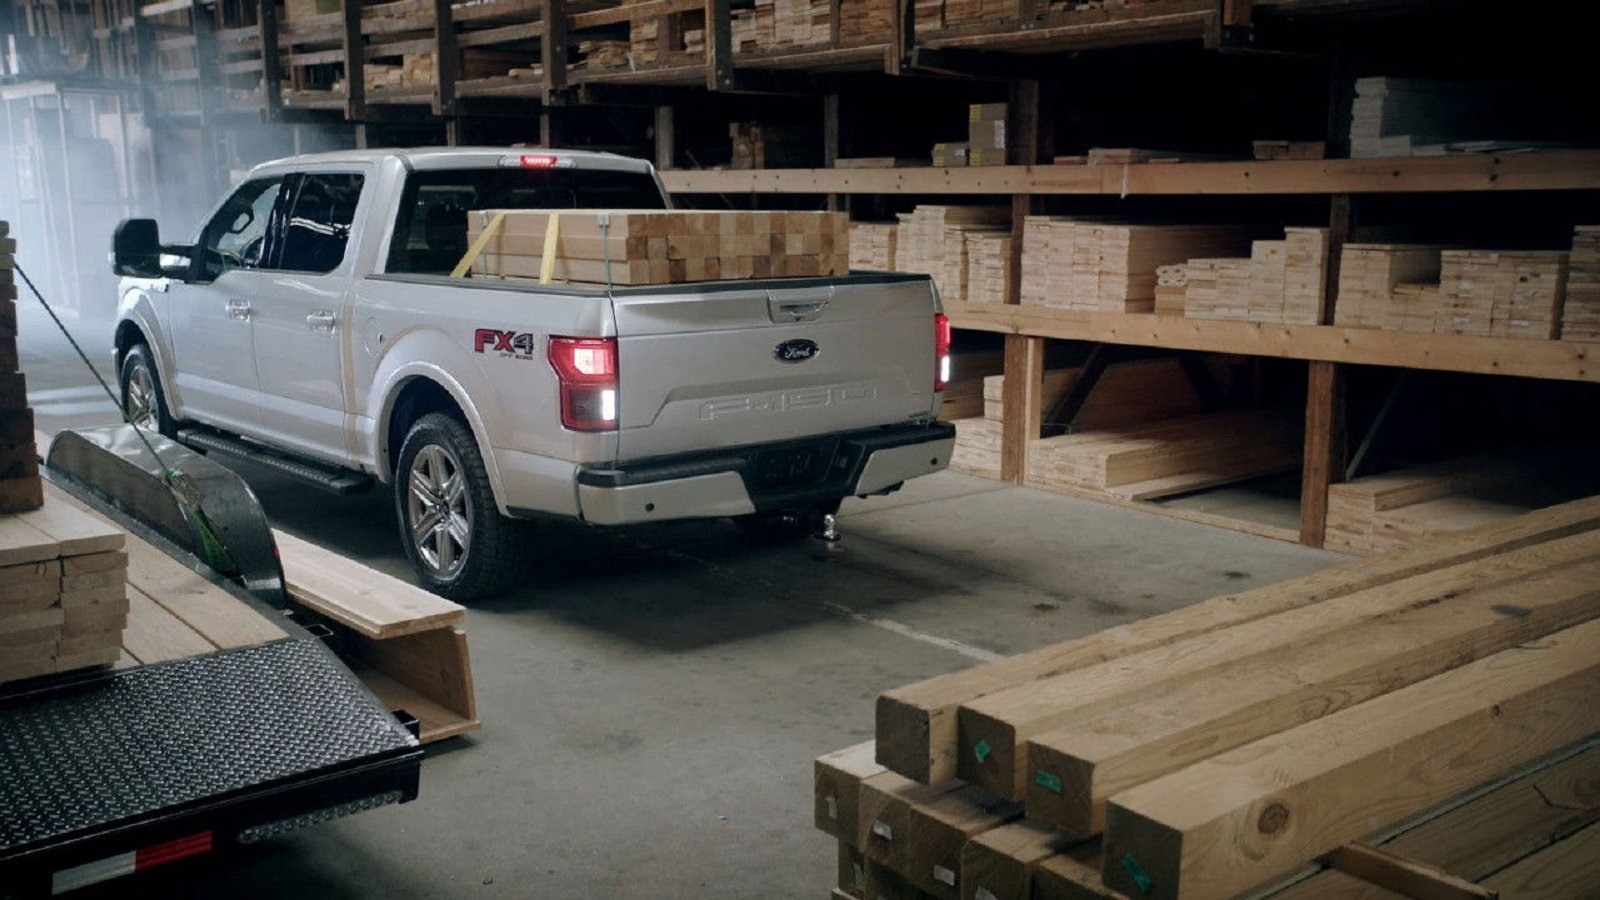 F-150 Motor Trend Truck of the Year Award